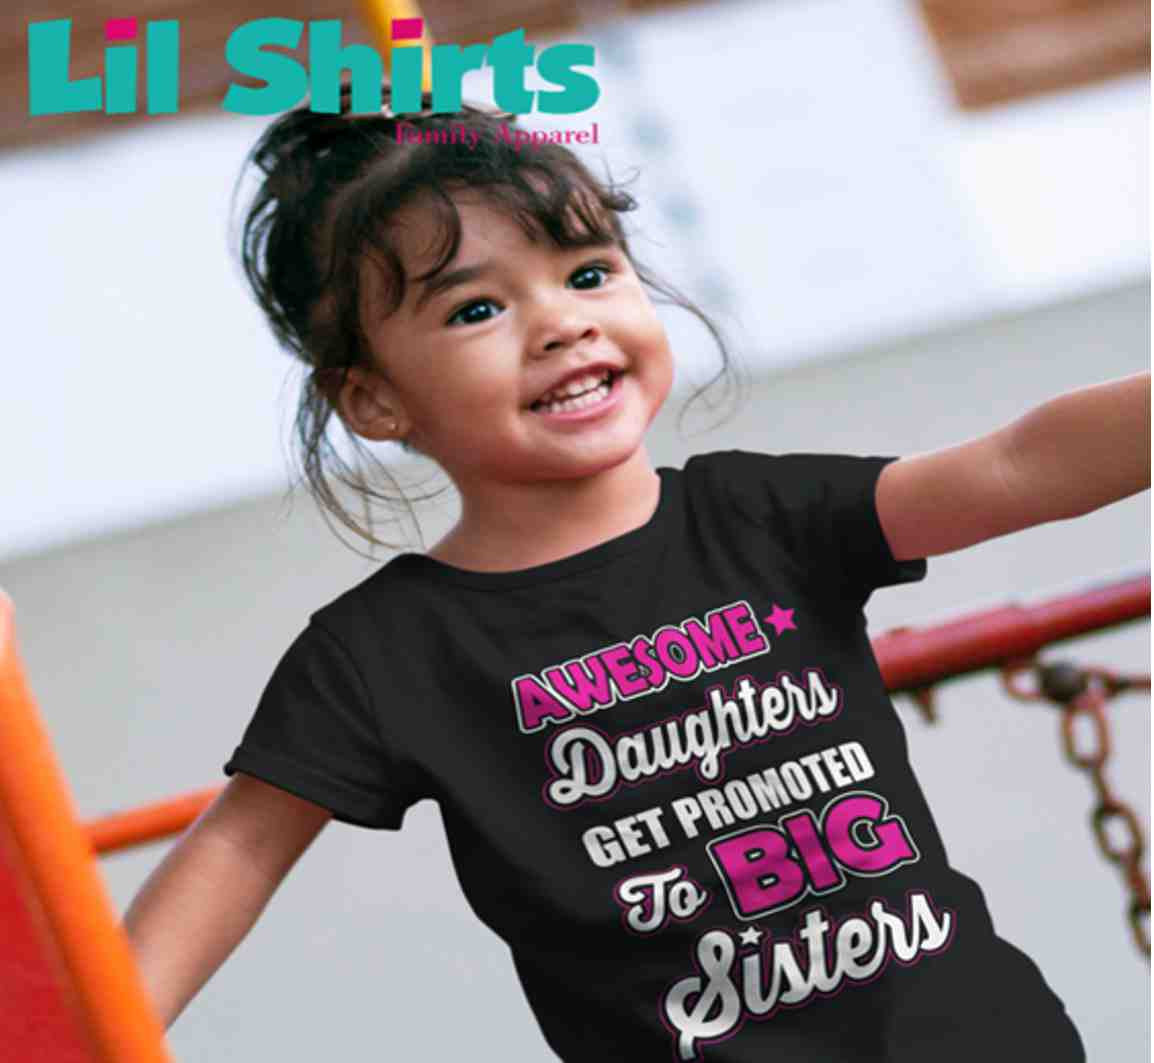 Lil Shirts Awesome Daughter Get Promoted Toddler Girls Shirt